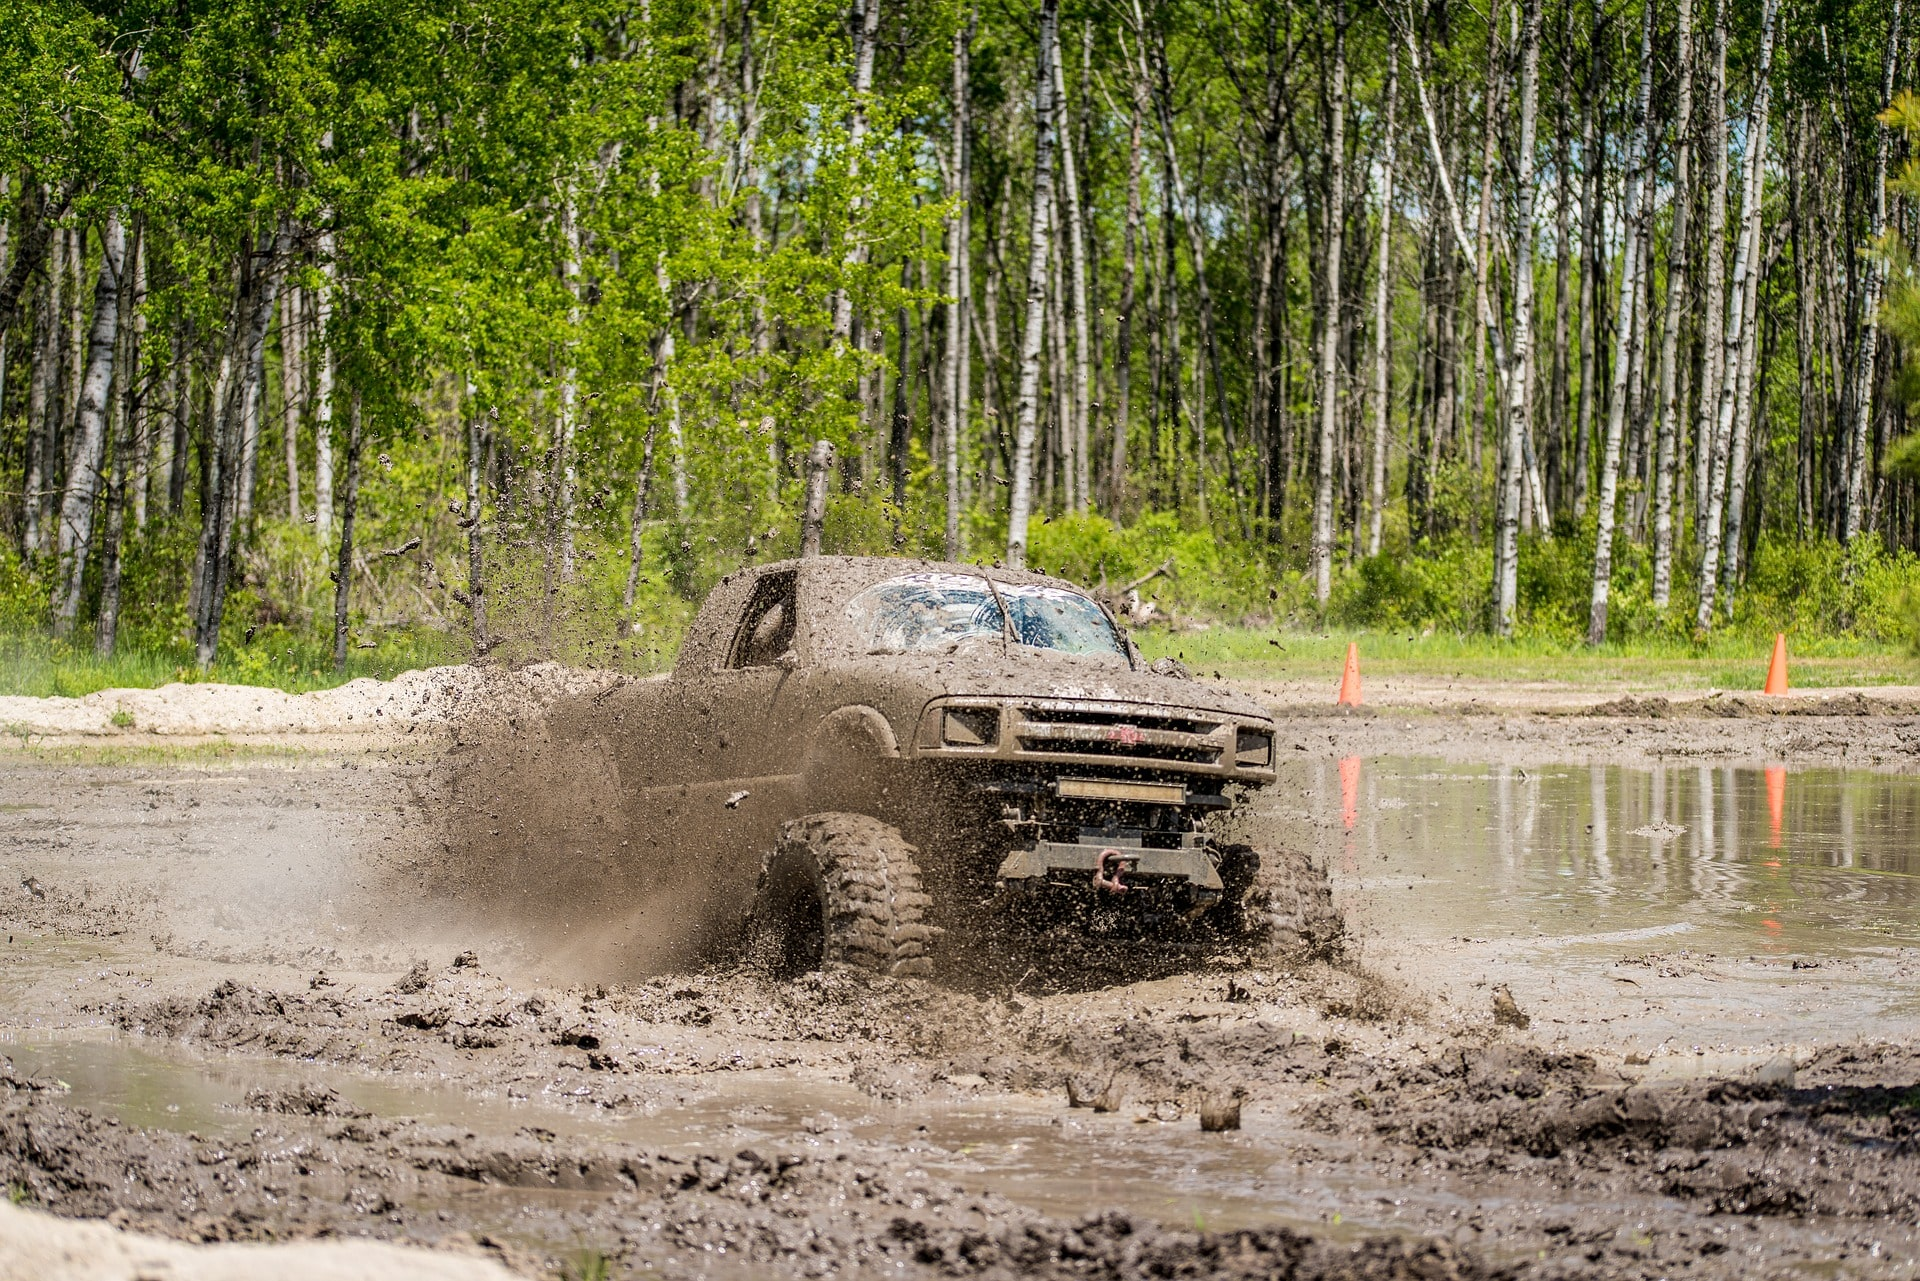 4wd in mud